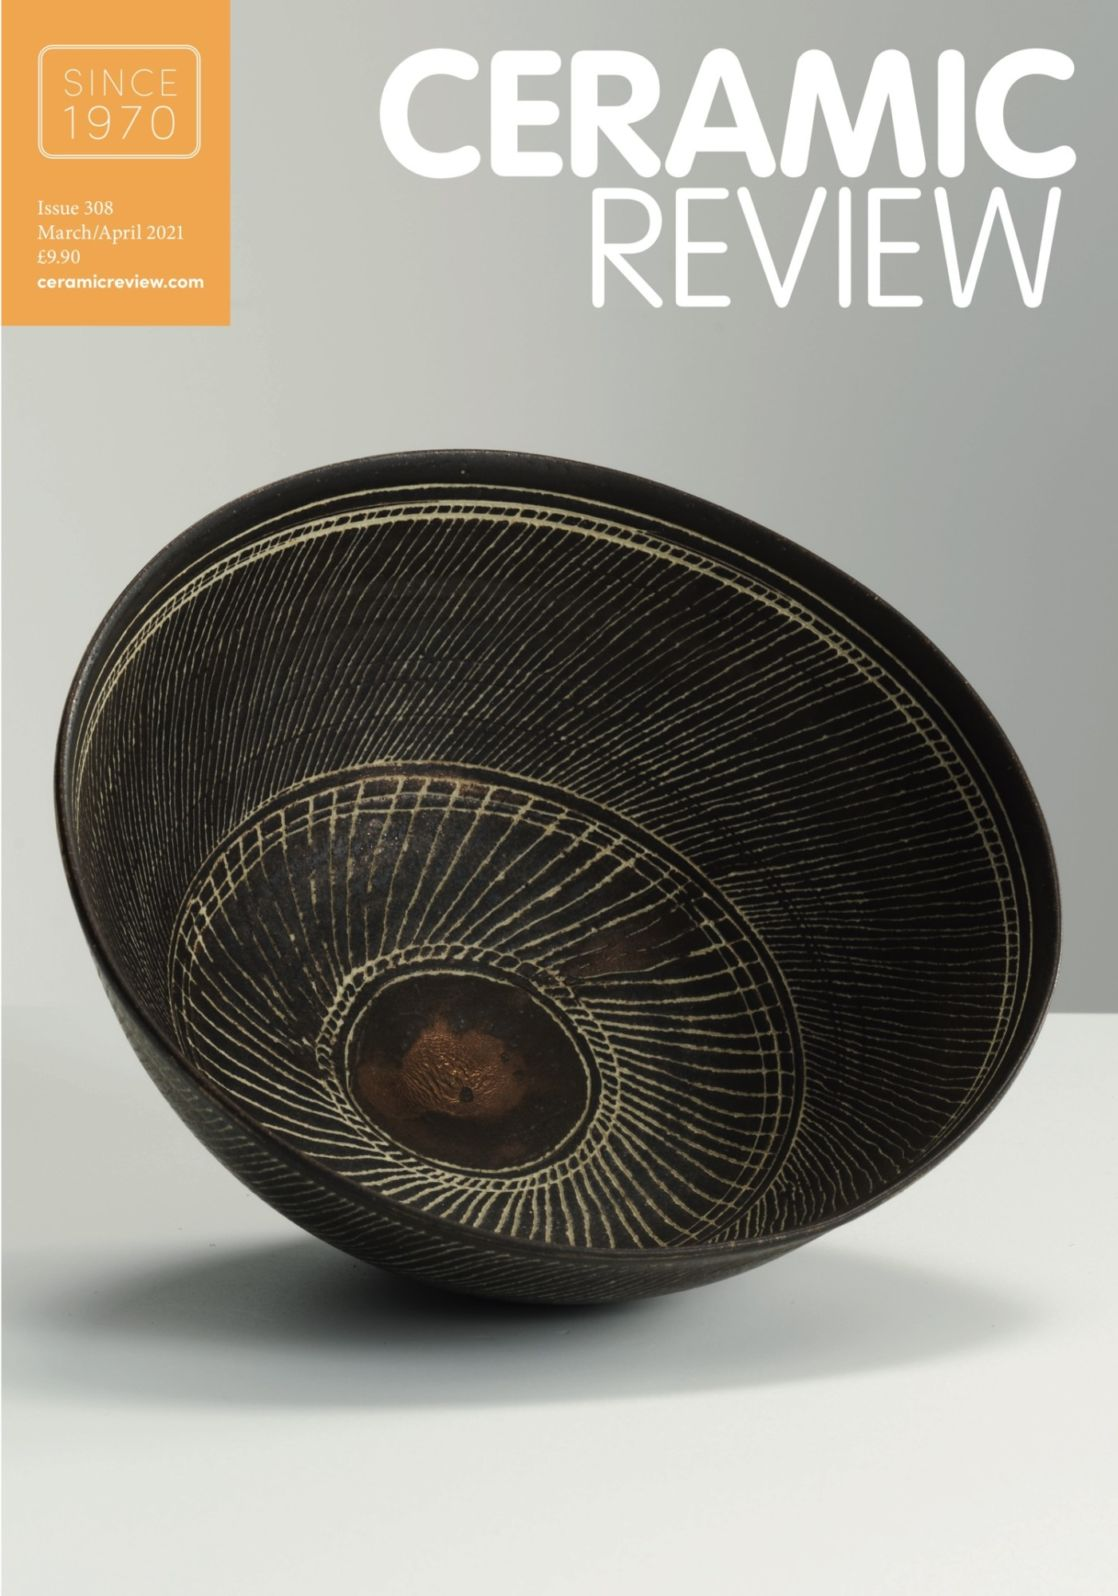 Issue 308 of Ceramic Review